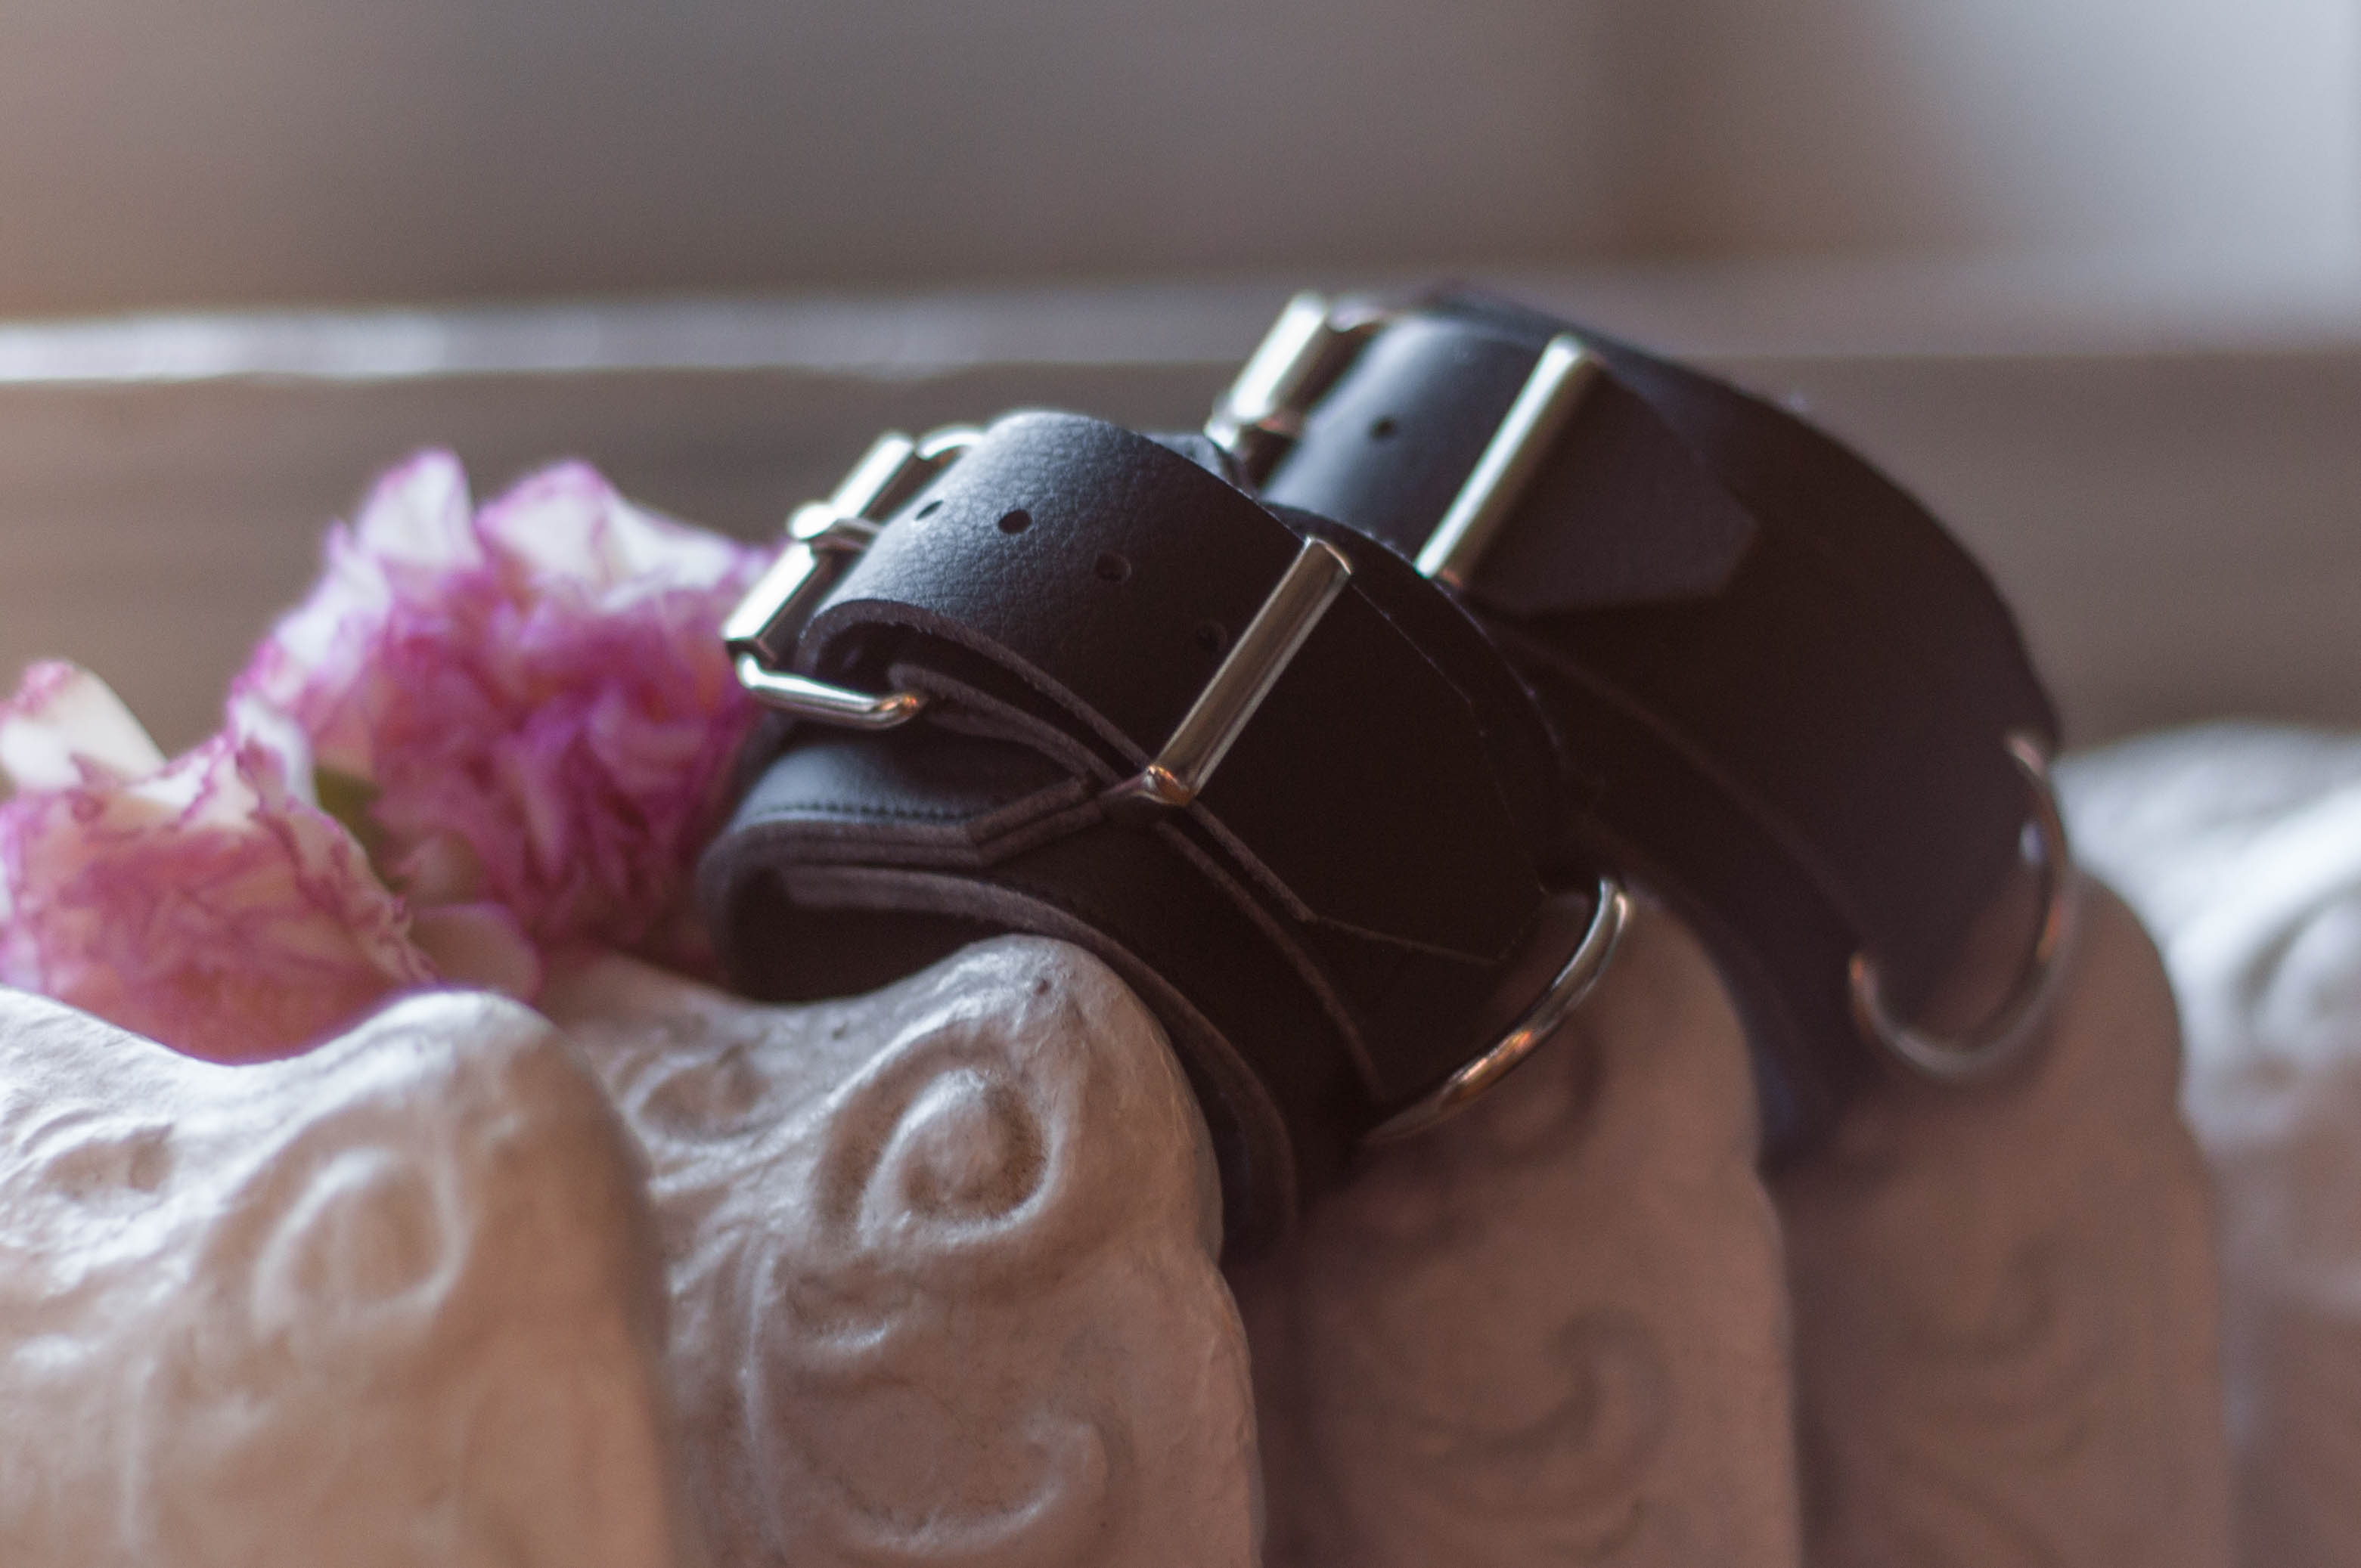 Review: KinkyVegan Wrist Cuffs